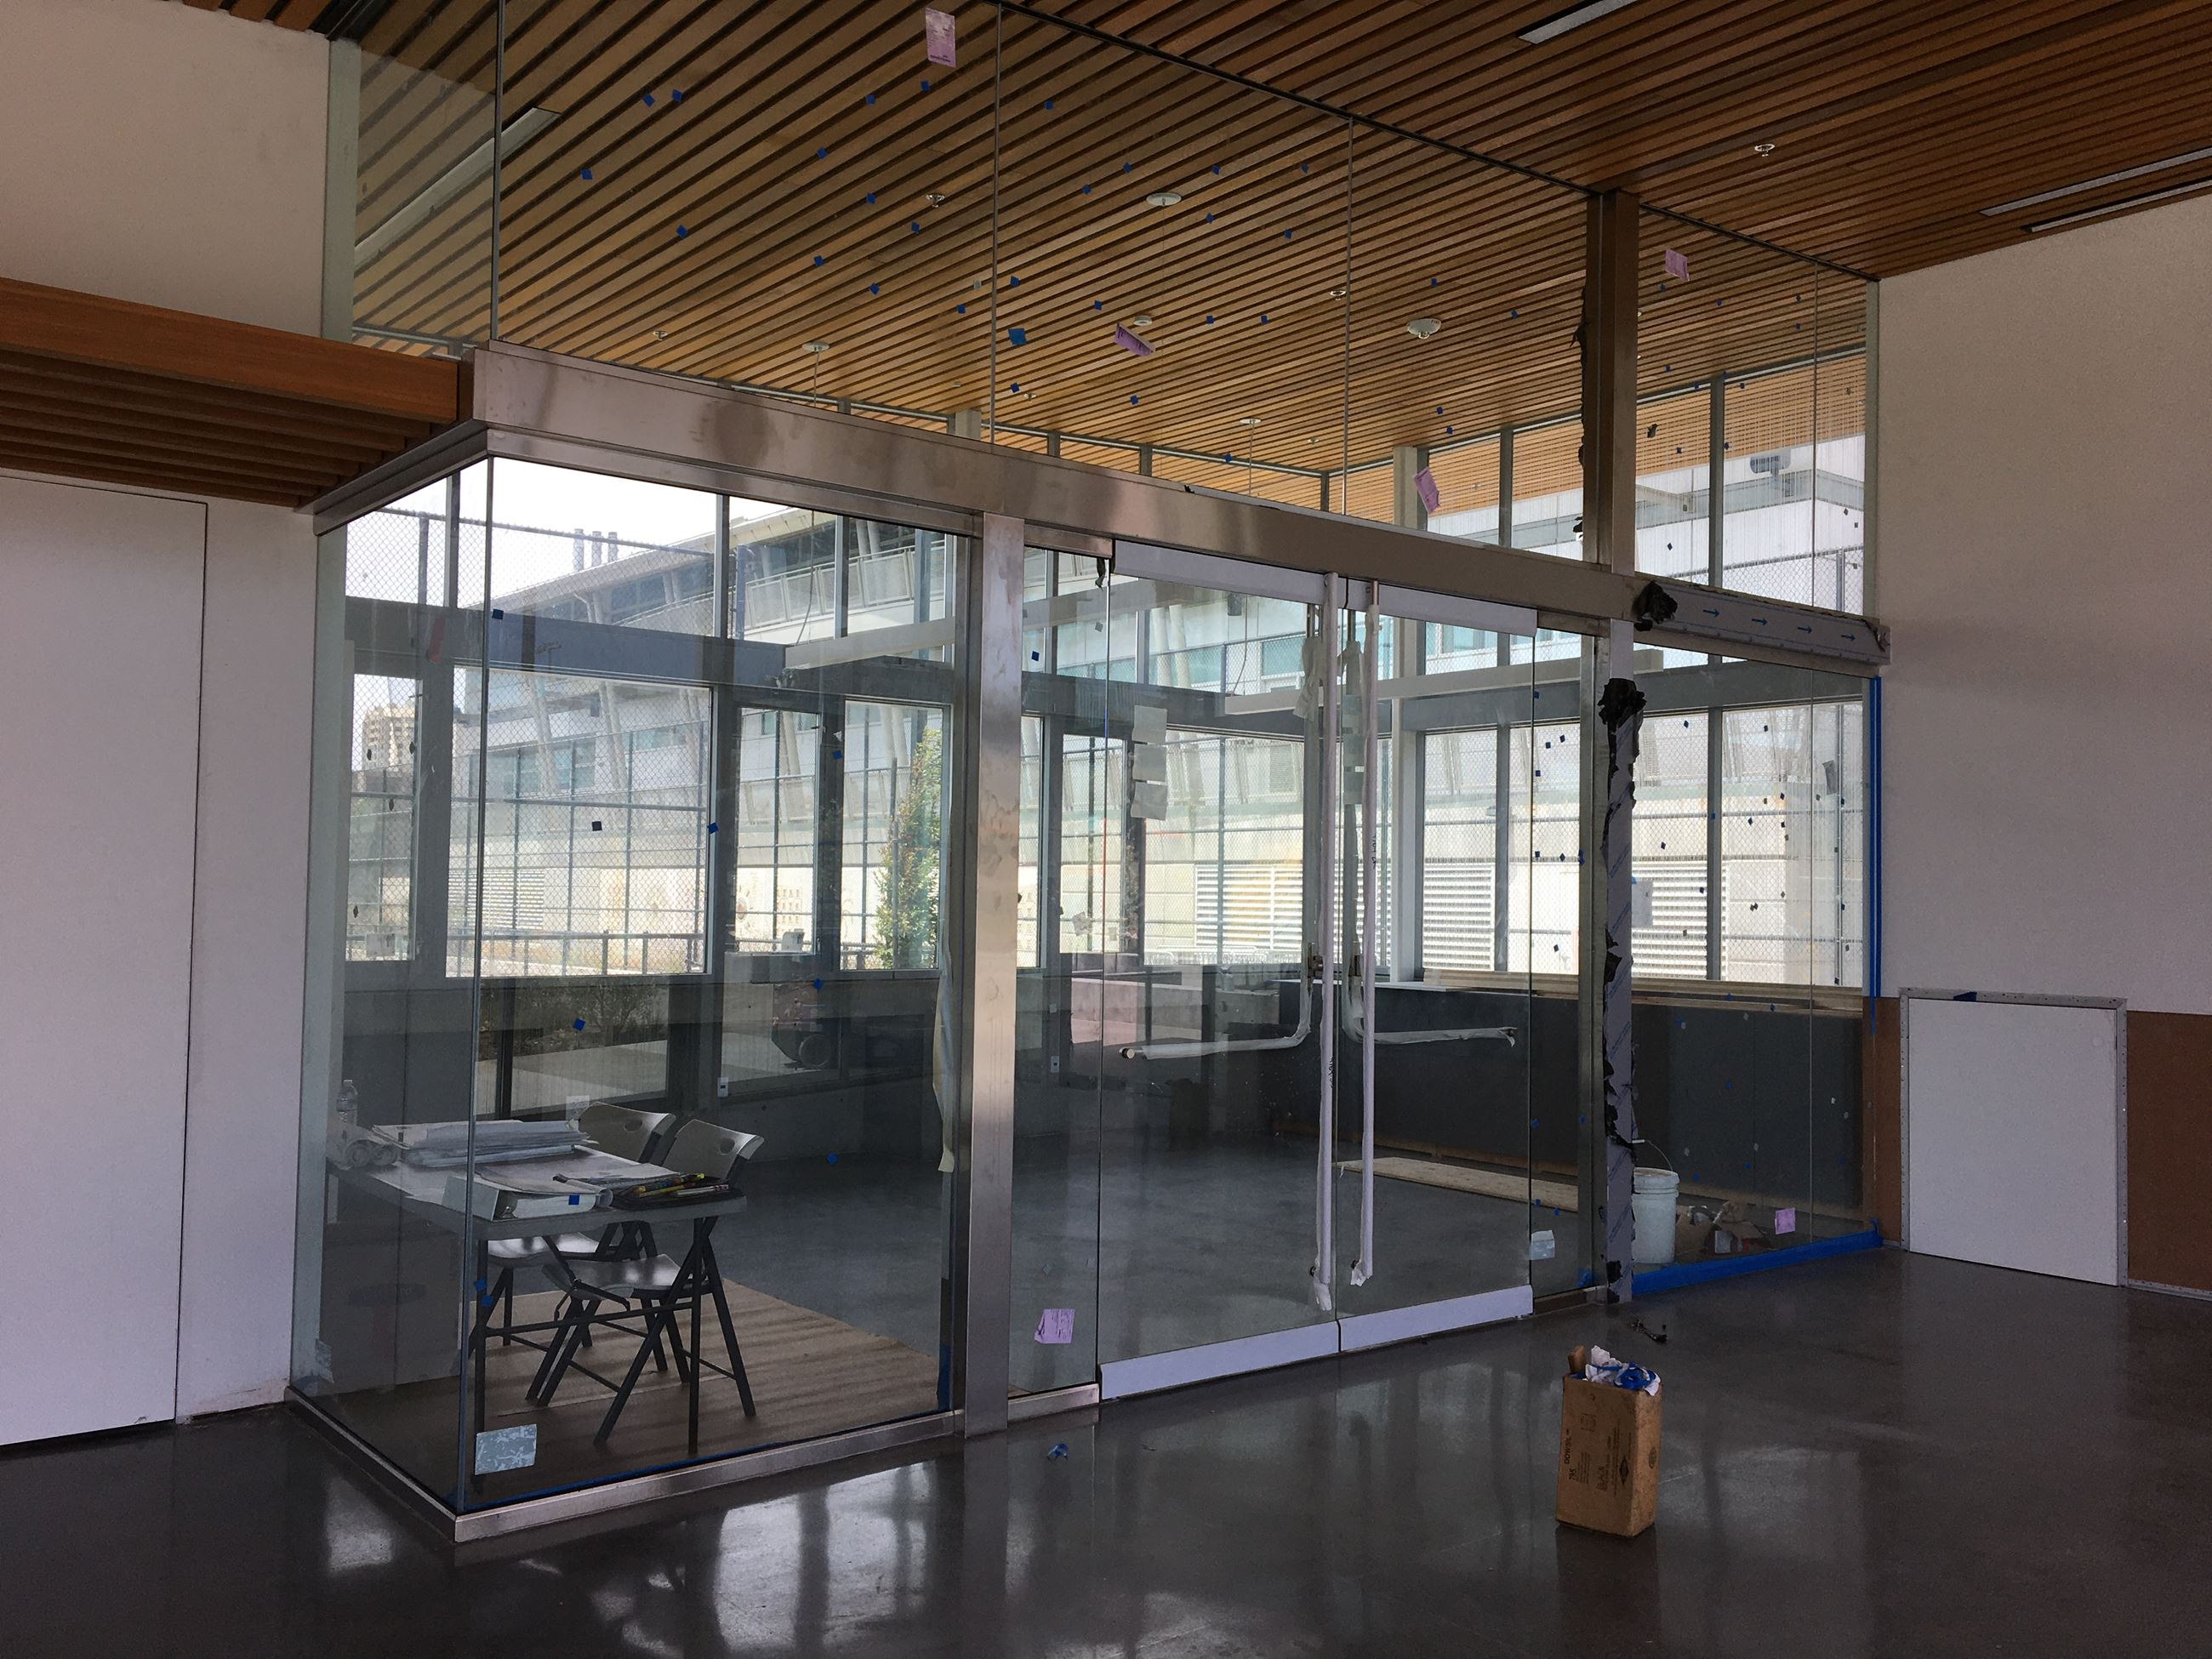 Classroom with glass walls and cement floor inside the clubhouse